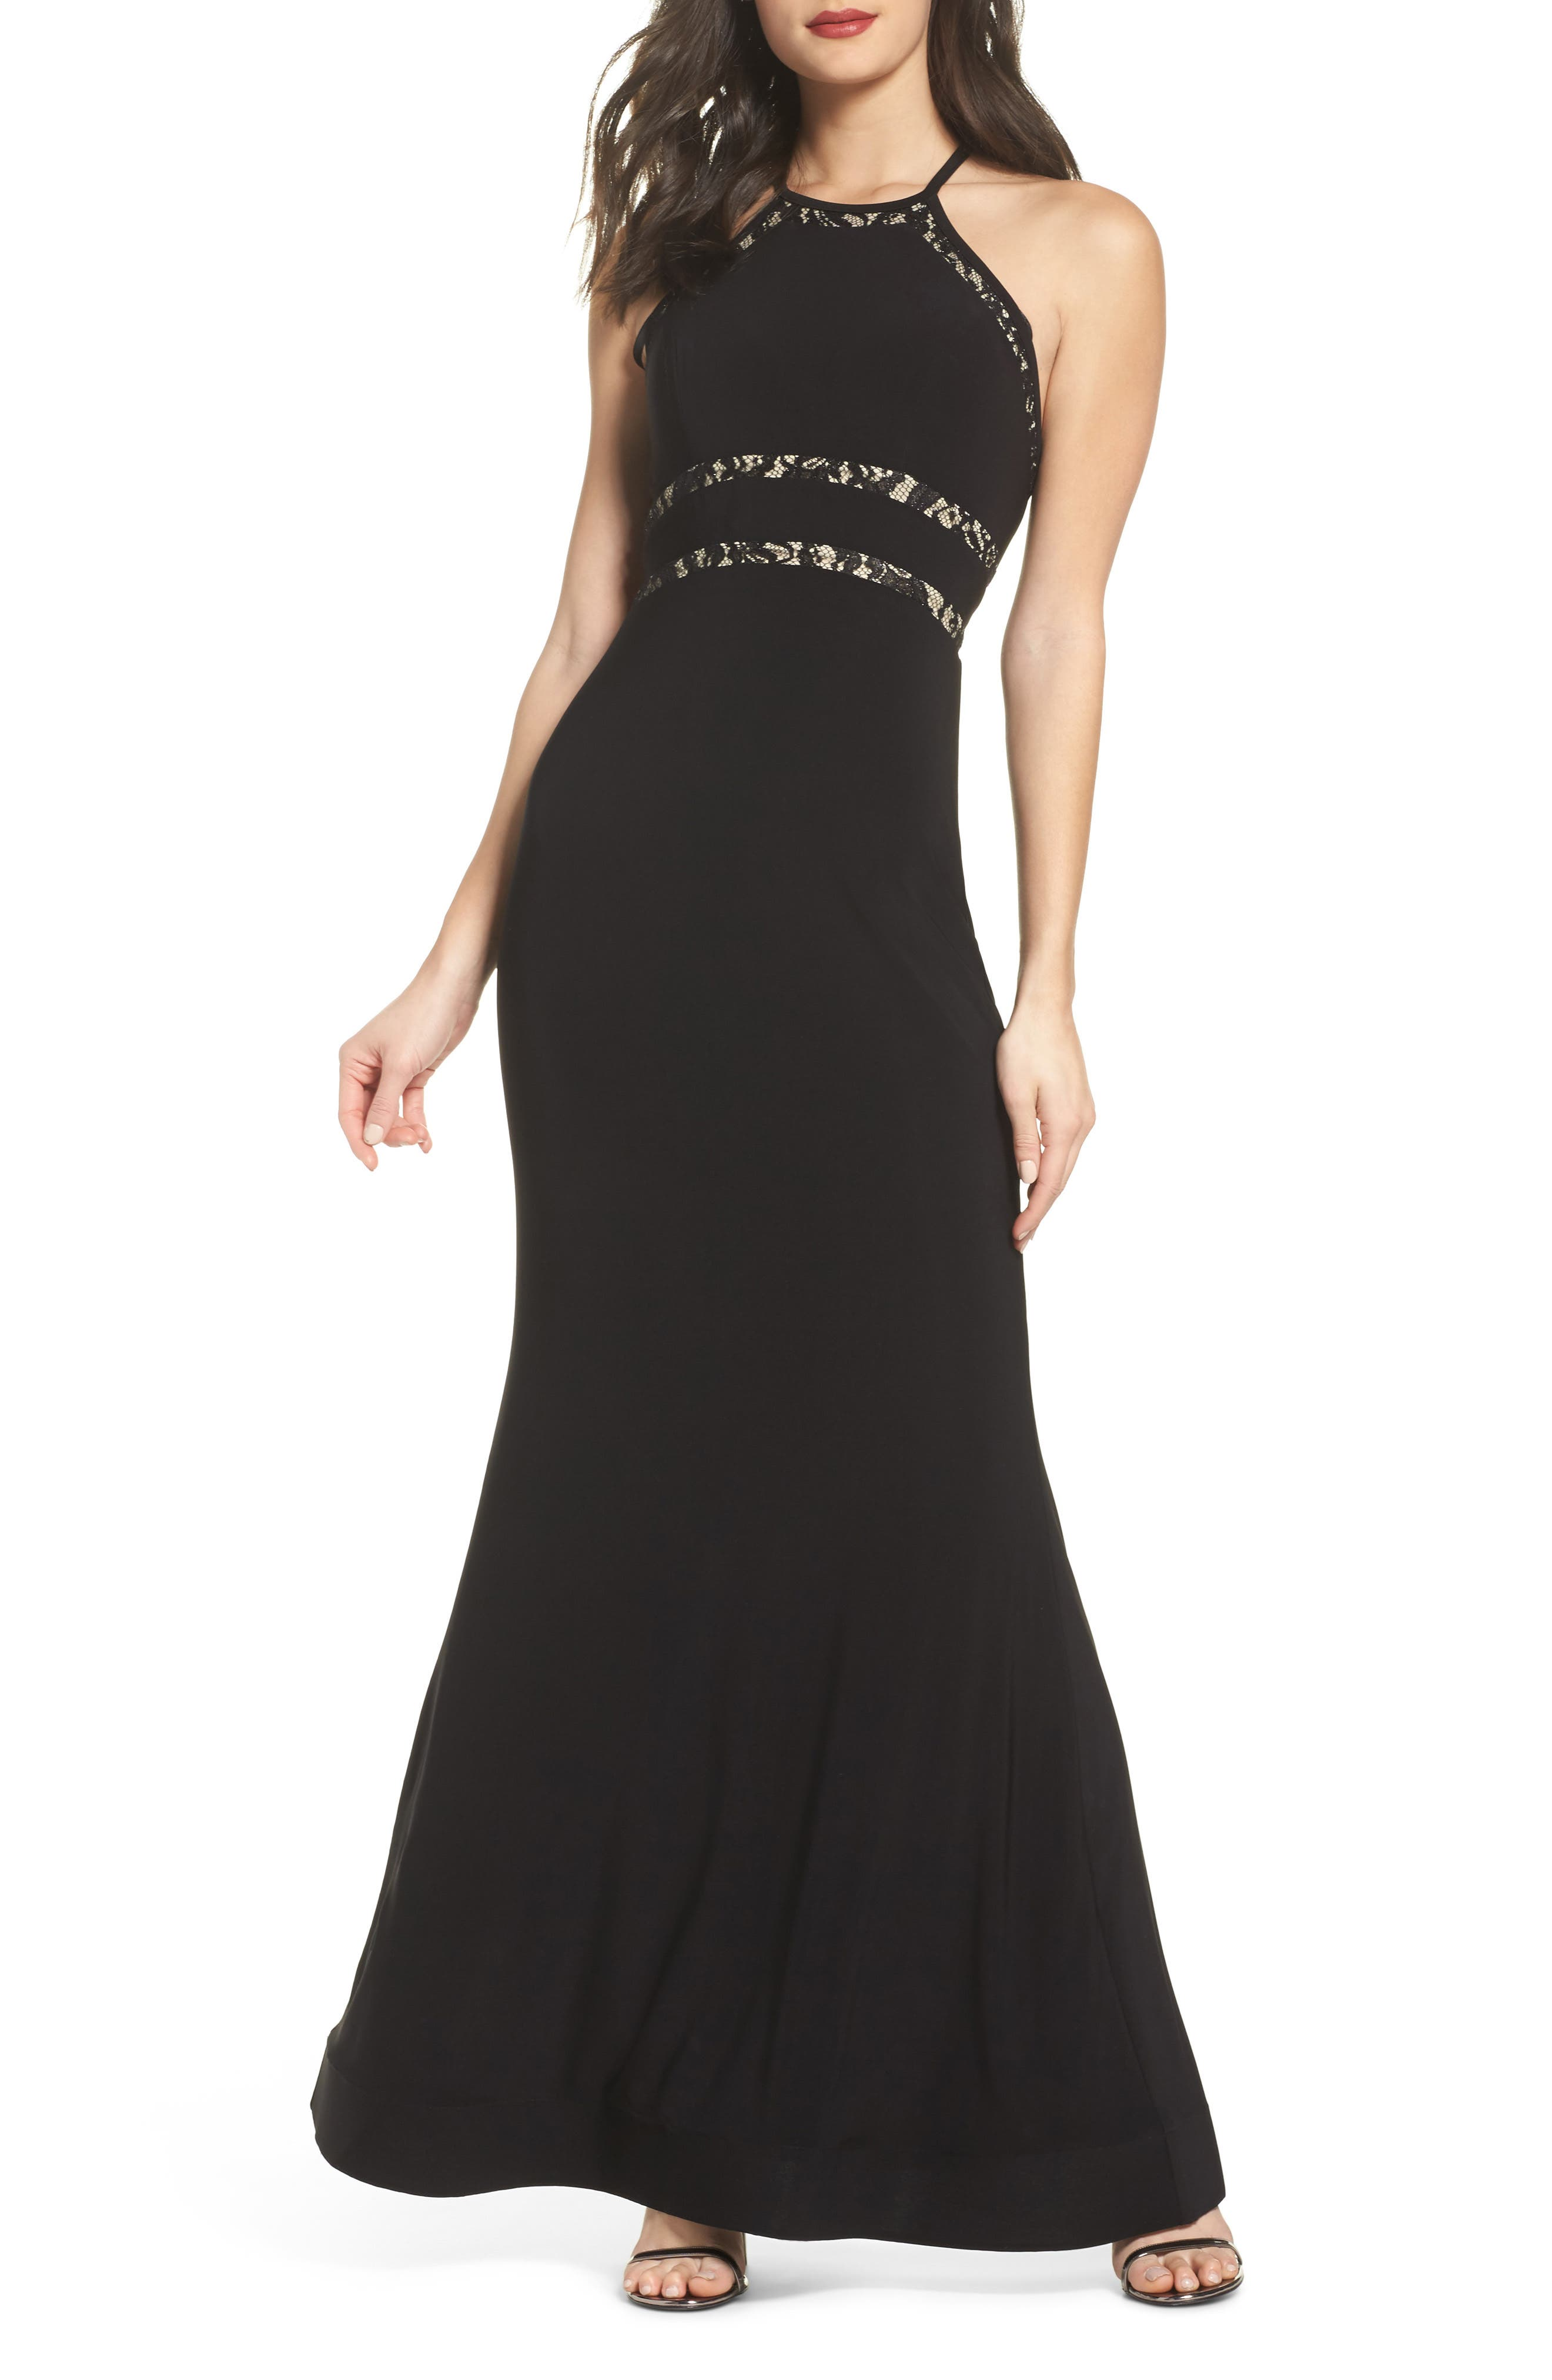 Ruffle Back Halter Gown,                             Main thumbnail 1, color,                             Black/ Nude